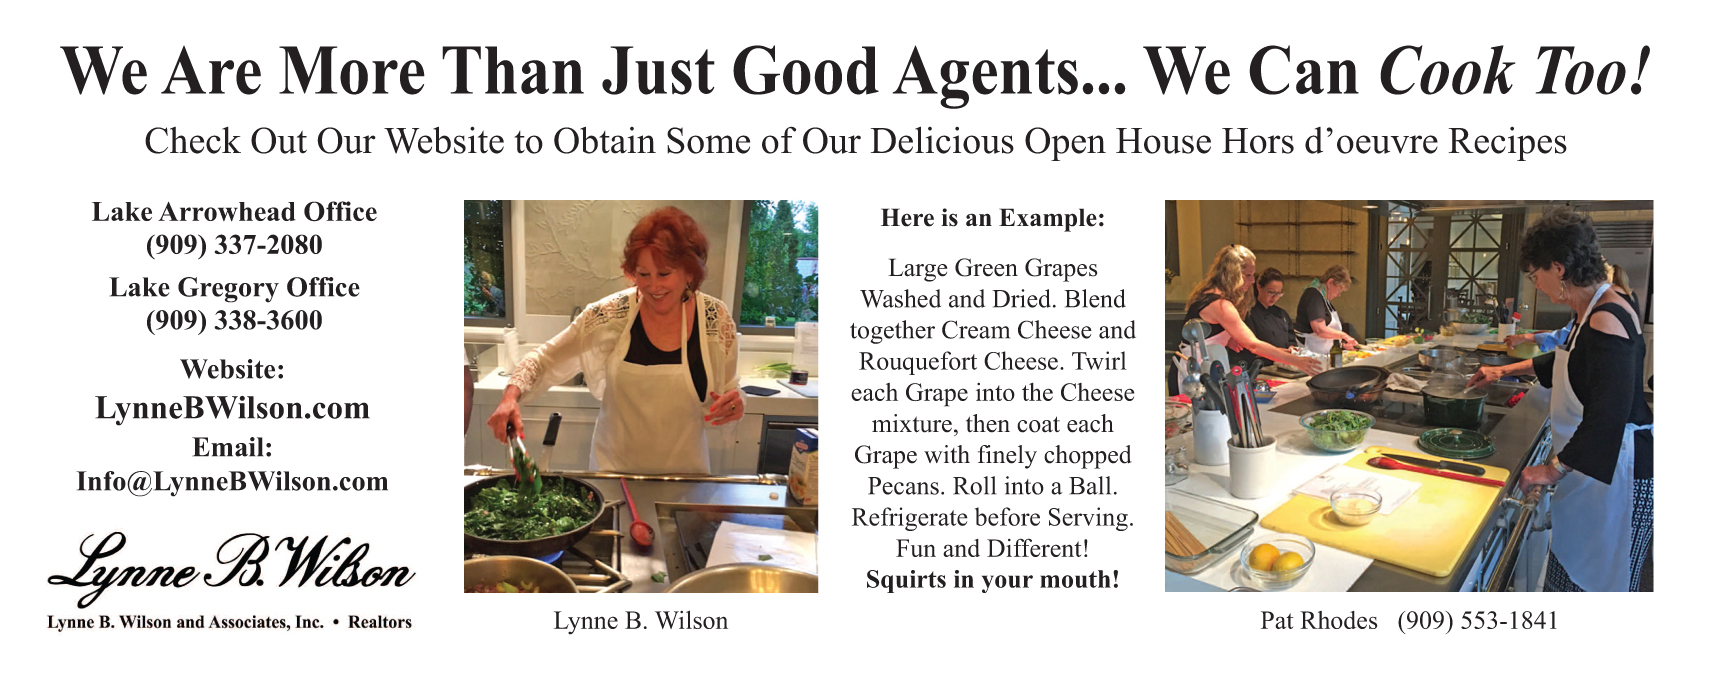 Lake Arrowhead Realtors do more than sell real estate- they can cook too!